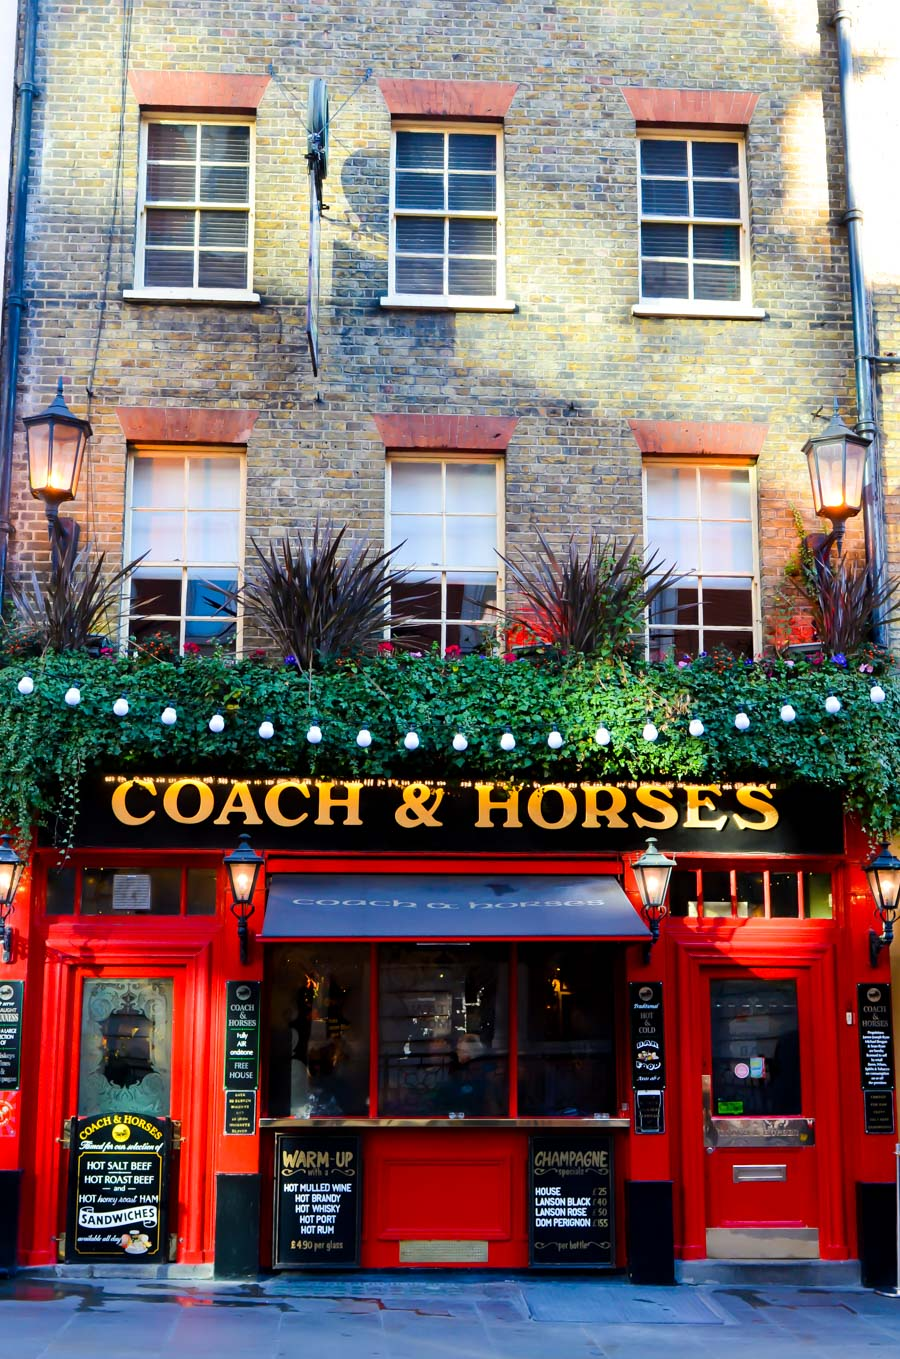 Authentic London Walking Tours in Soho + Covent Garden